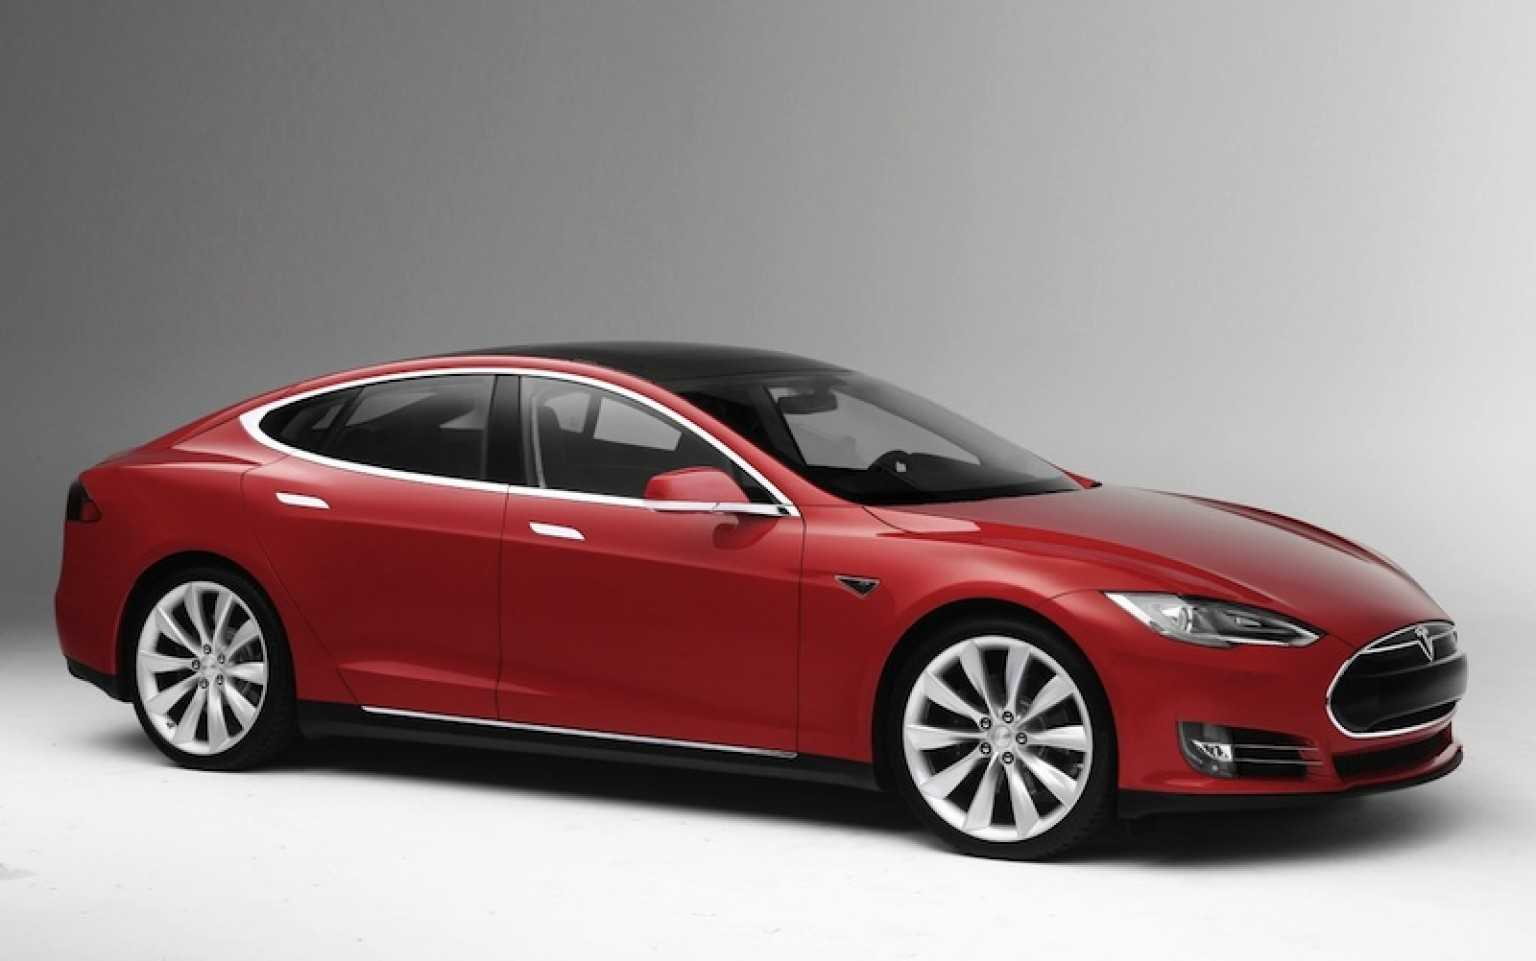 Tesla Introduces Referral Program, Friends of Tesla Model S Owners Can Save $1000